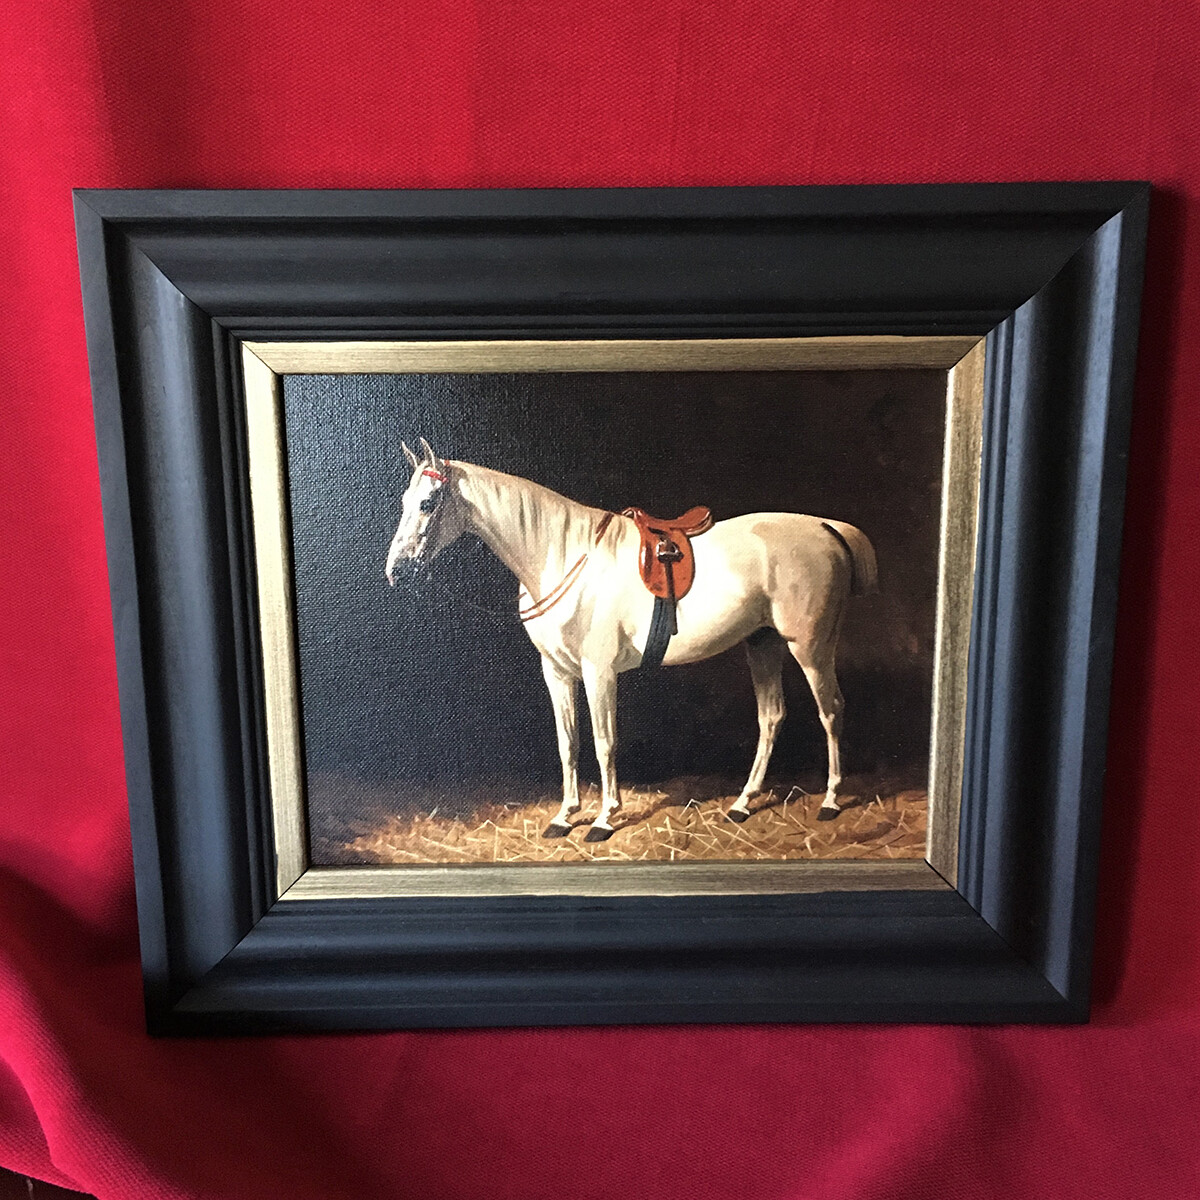 Saddled Horse by the Barn Canvas